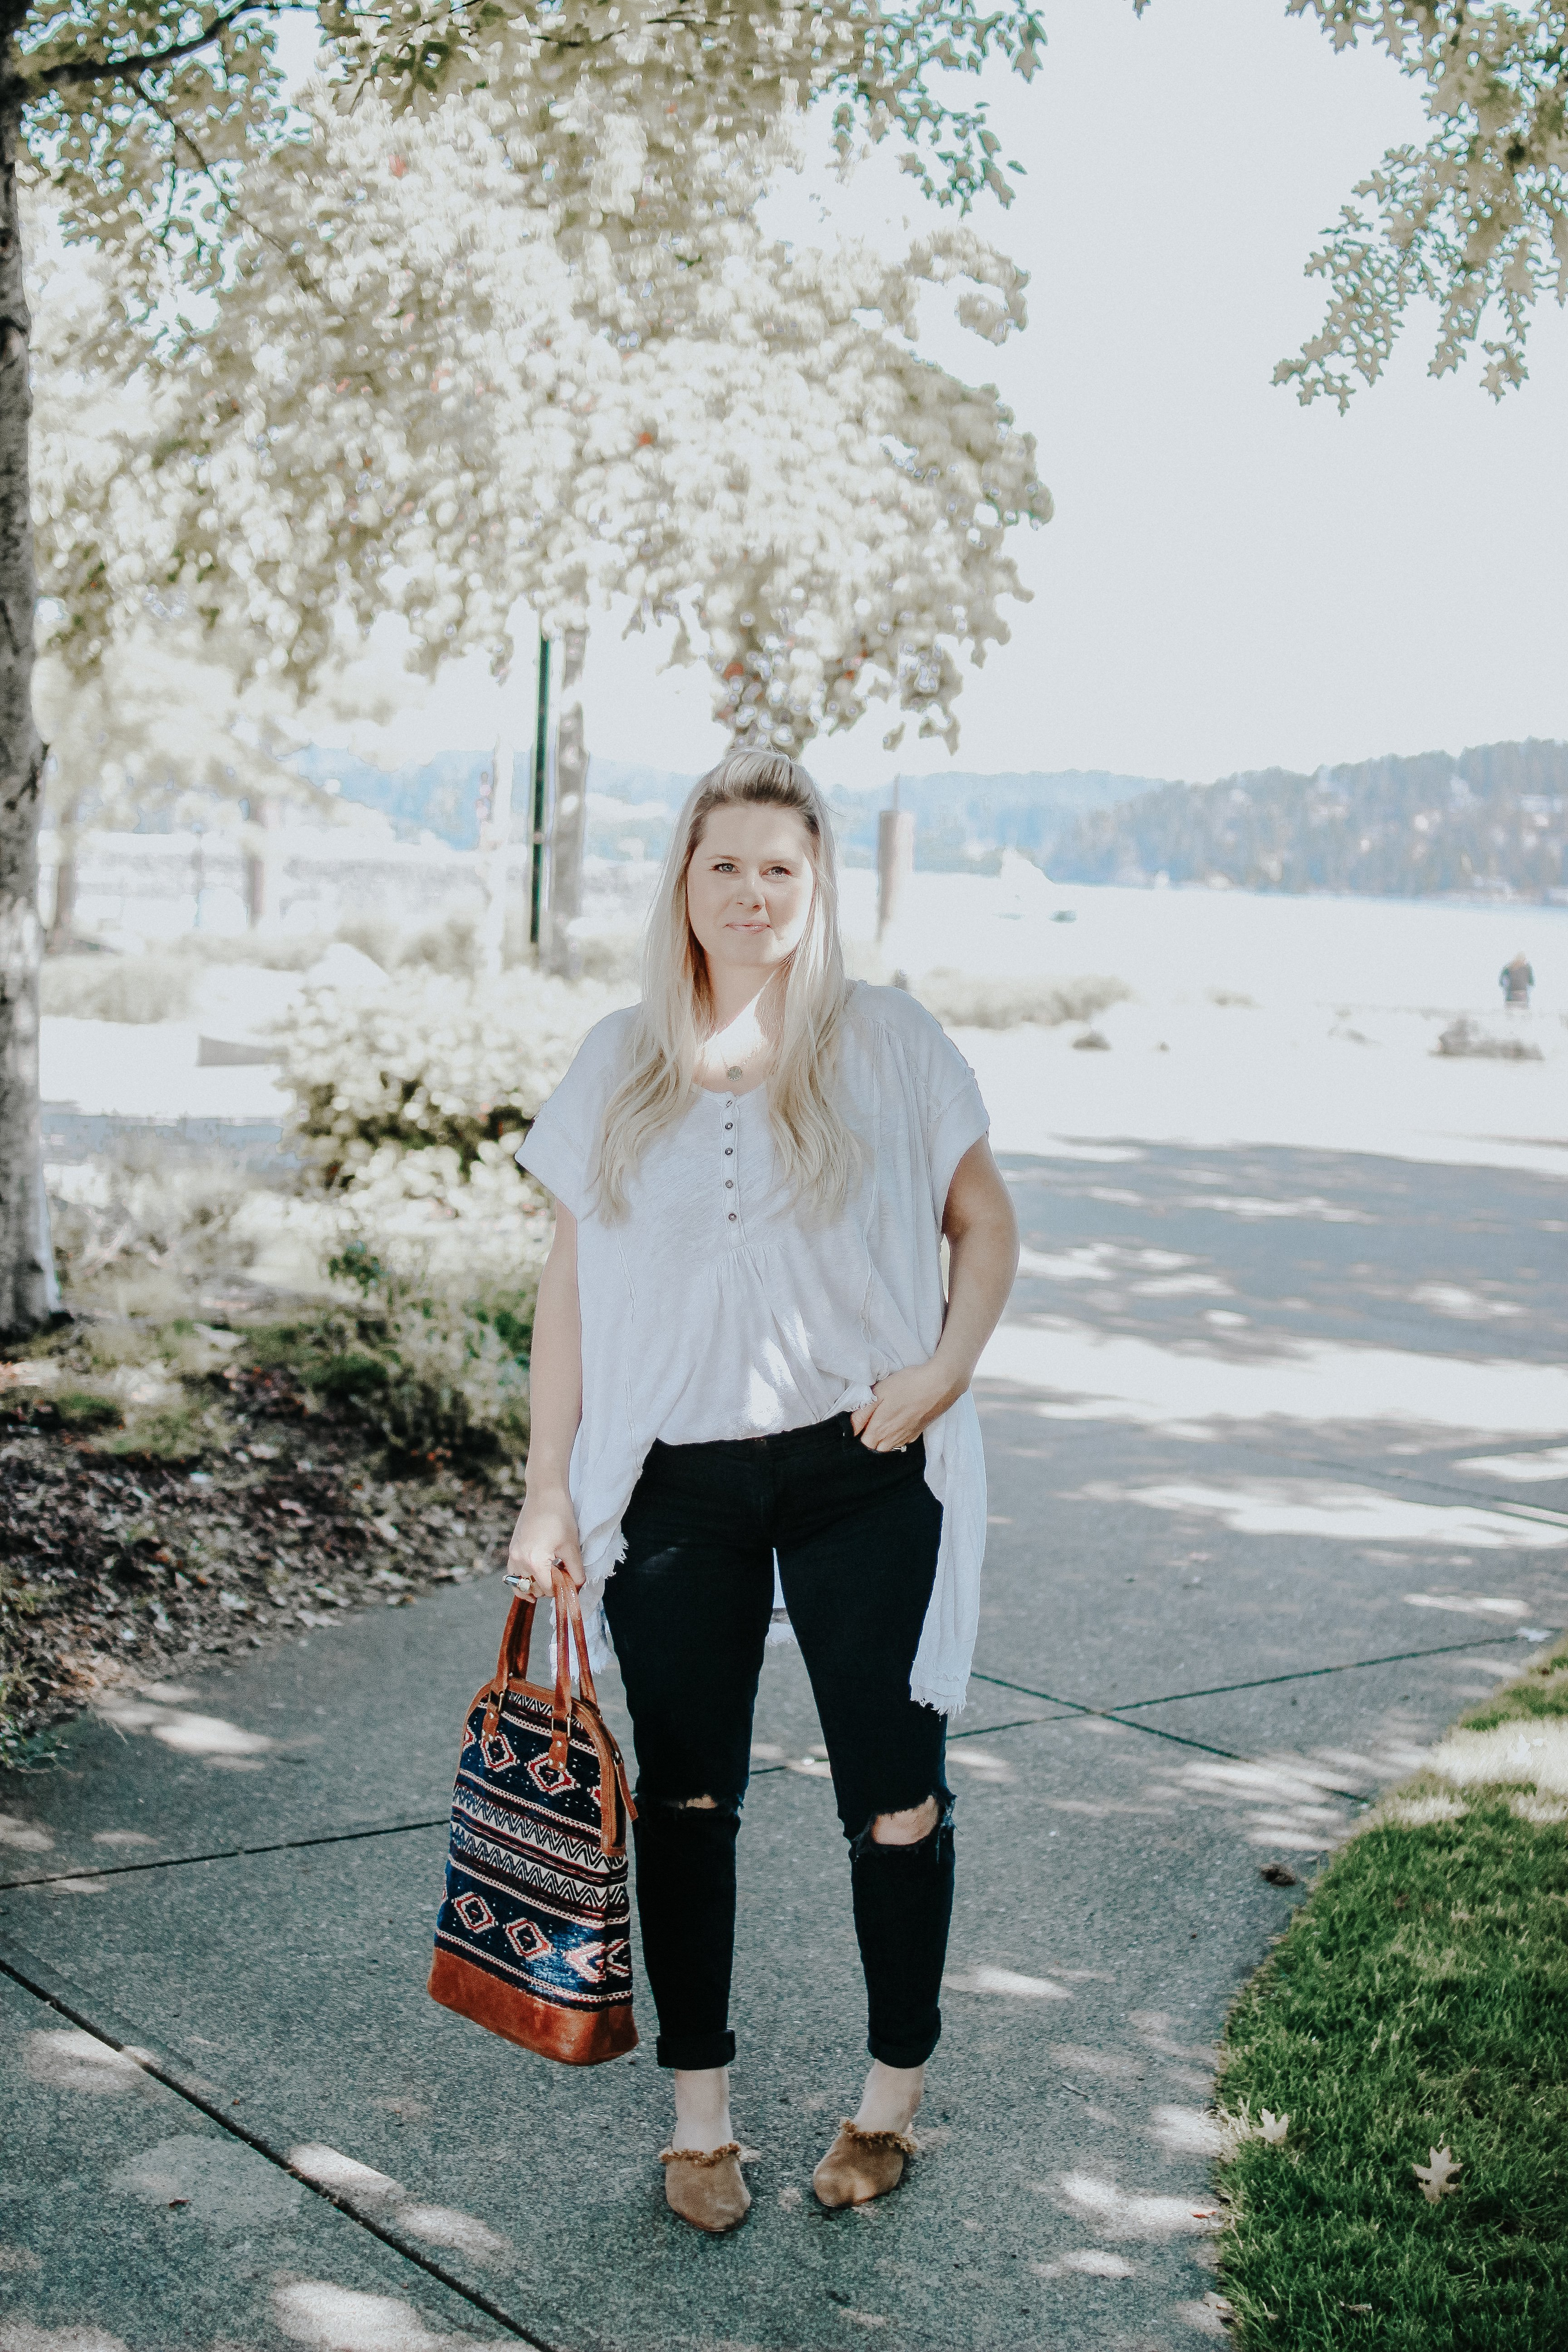 My Favorite Fall Pieces. How to Curate a Wardrobe and make it a beautiful Capsule Wardrobe. You end up spending less in the long run and loving your outfits every day. #CapsuleWardrobe #qualityoverquantity www.whitepicketfarmhouse.com